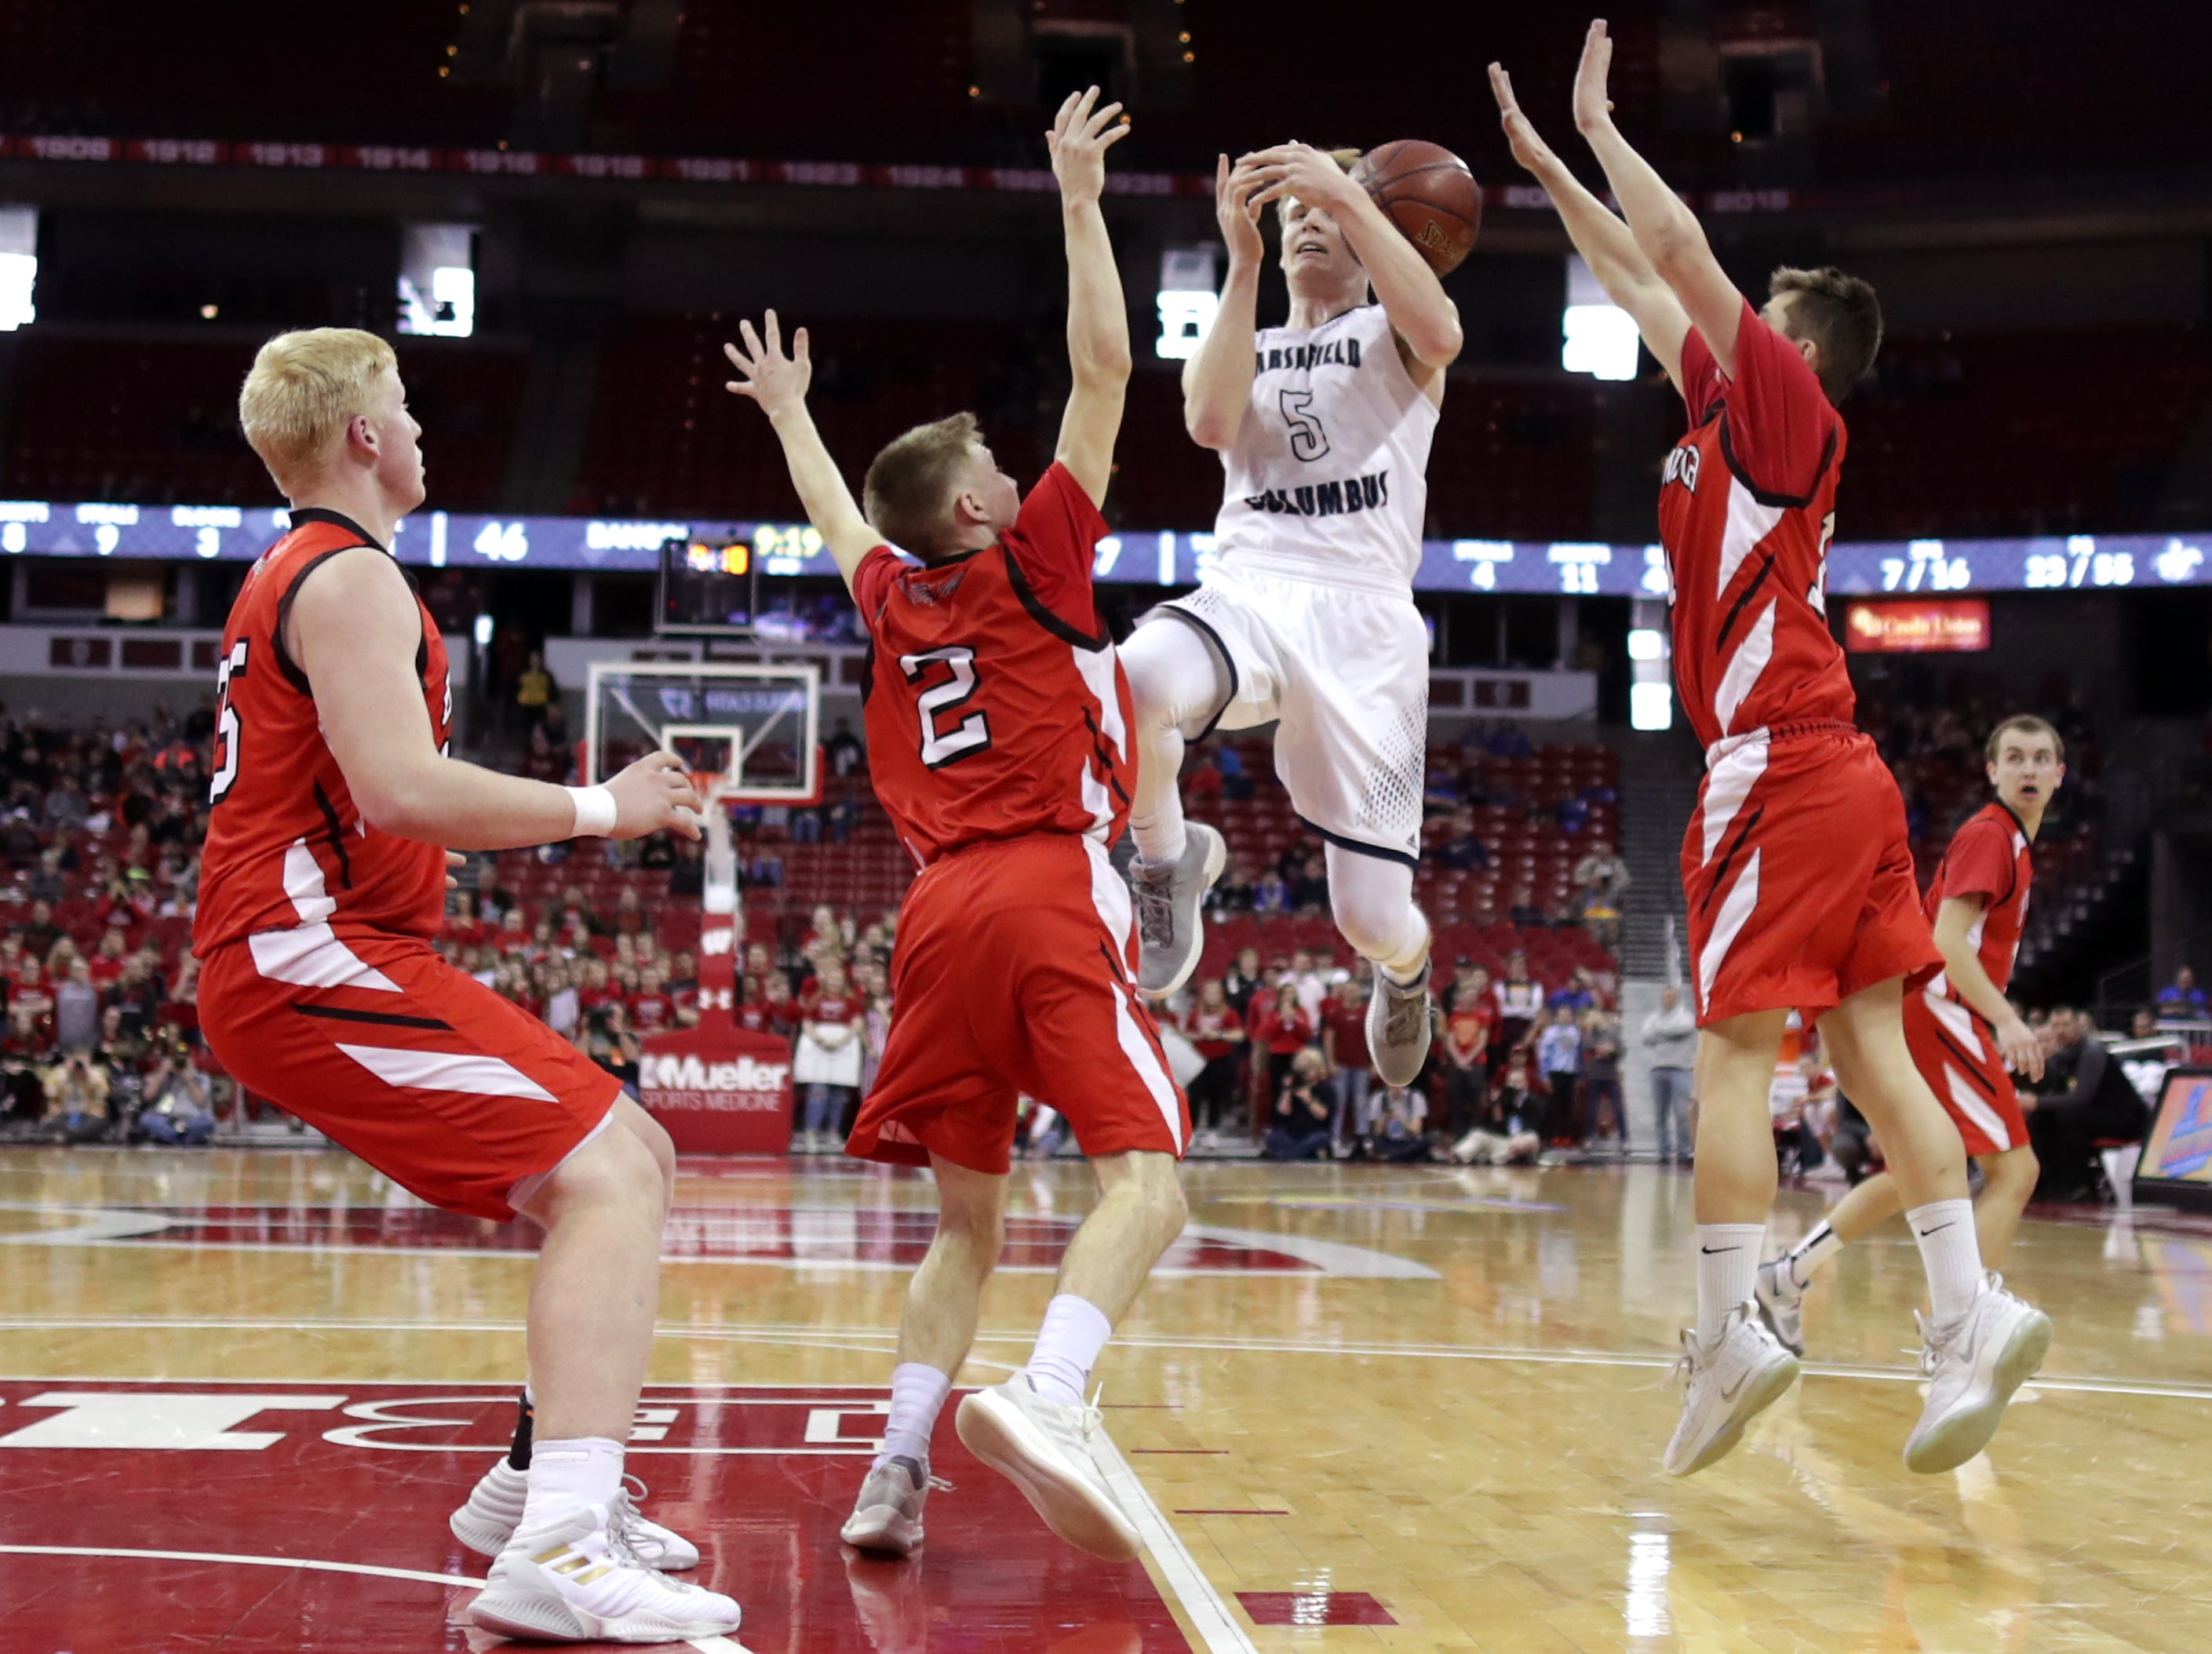 Columbus Catholic High School's #5 Noah Taylor against Bangor High School during their WIAA Division 5 boys basketball state semifinal on Friday, March 15, 2019, at the Kohl Center in Madison, Wis. Clumbus defeated Bangor 69 to 66. Wm. Glasheen/USA TODAY NETWORK-Wisconsin.